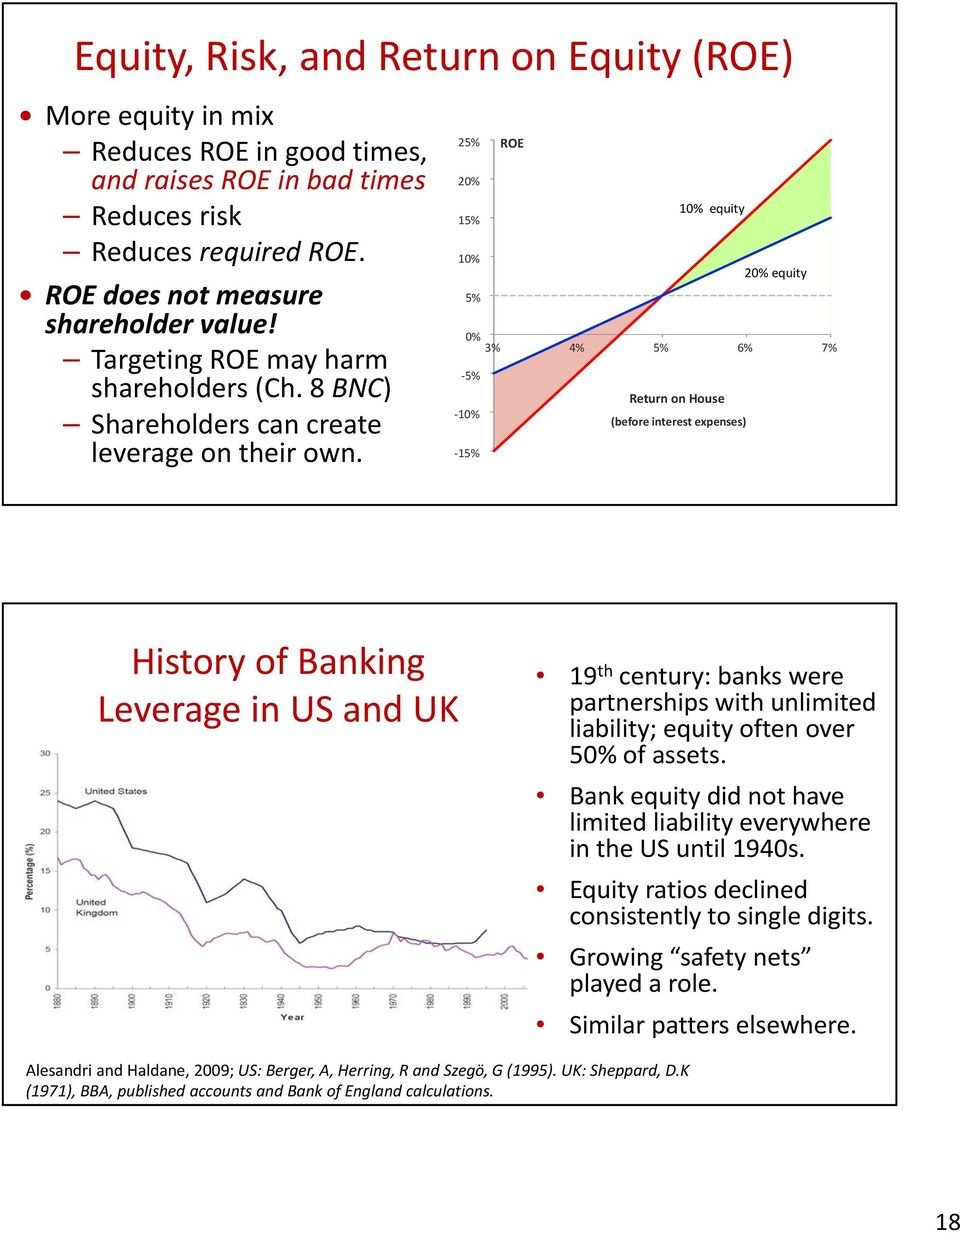 15% 25% 20% 15% 10% ROE 10% equity 3% 4% 5% 6% 7% Return on House (before interest expenses) 20% equity History of Banking Leverage in US and UK 19 th century: banks were partnerships with unlimited